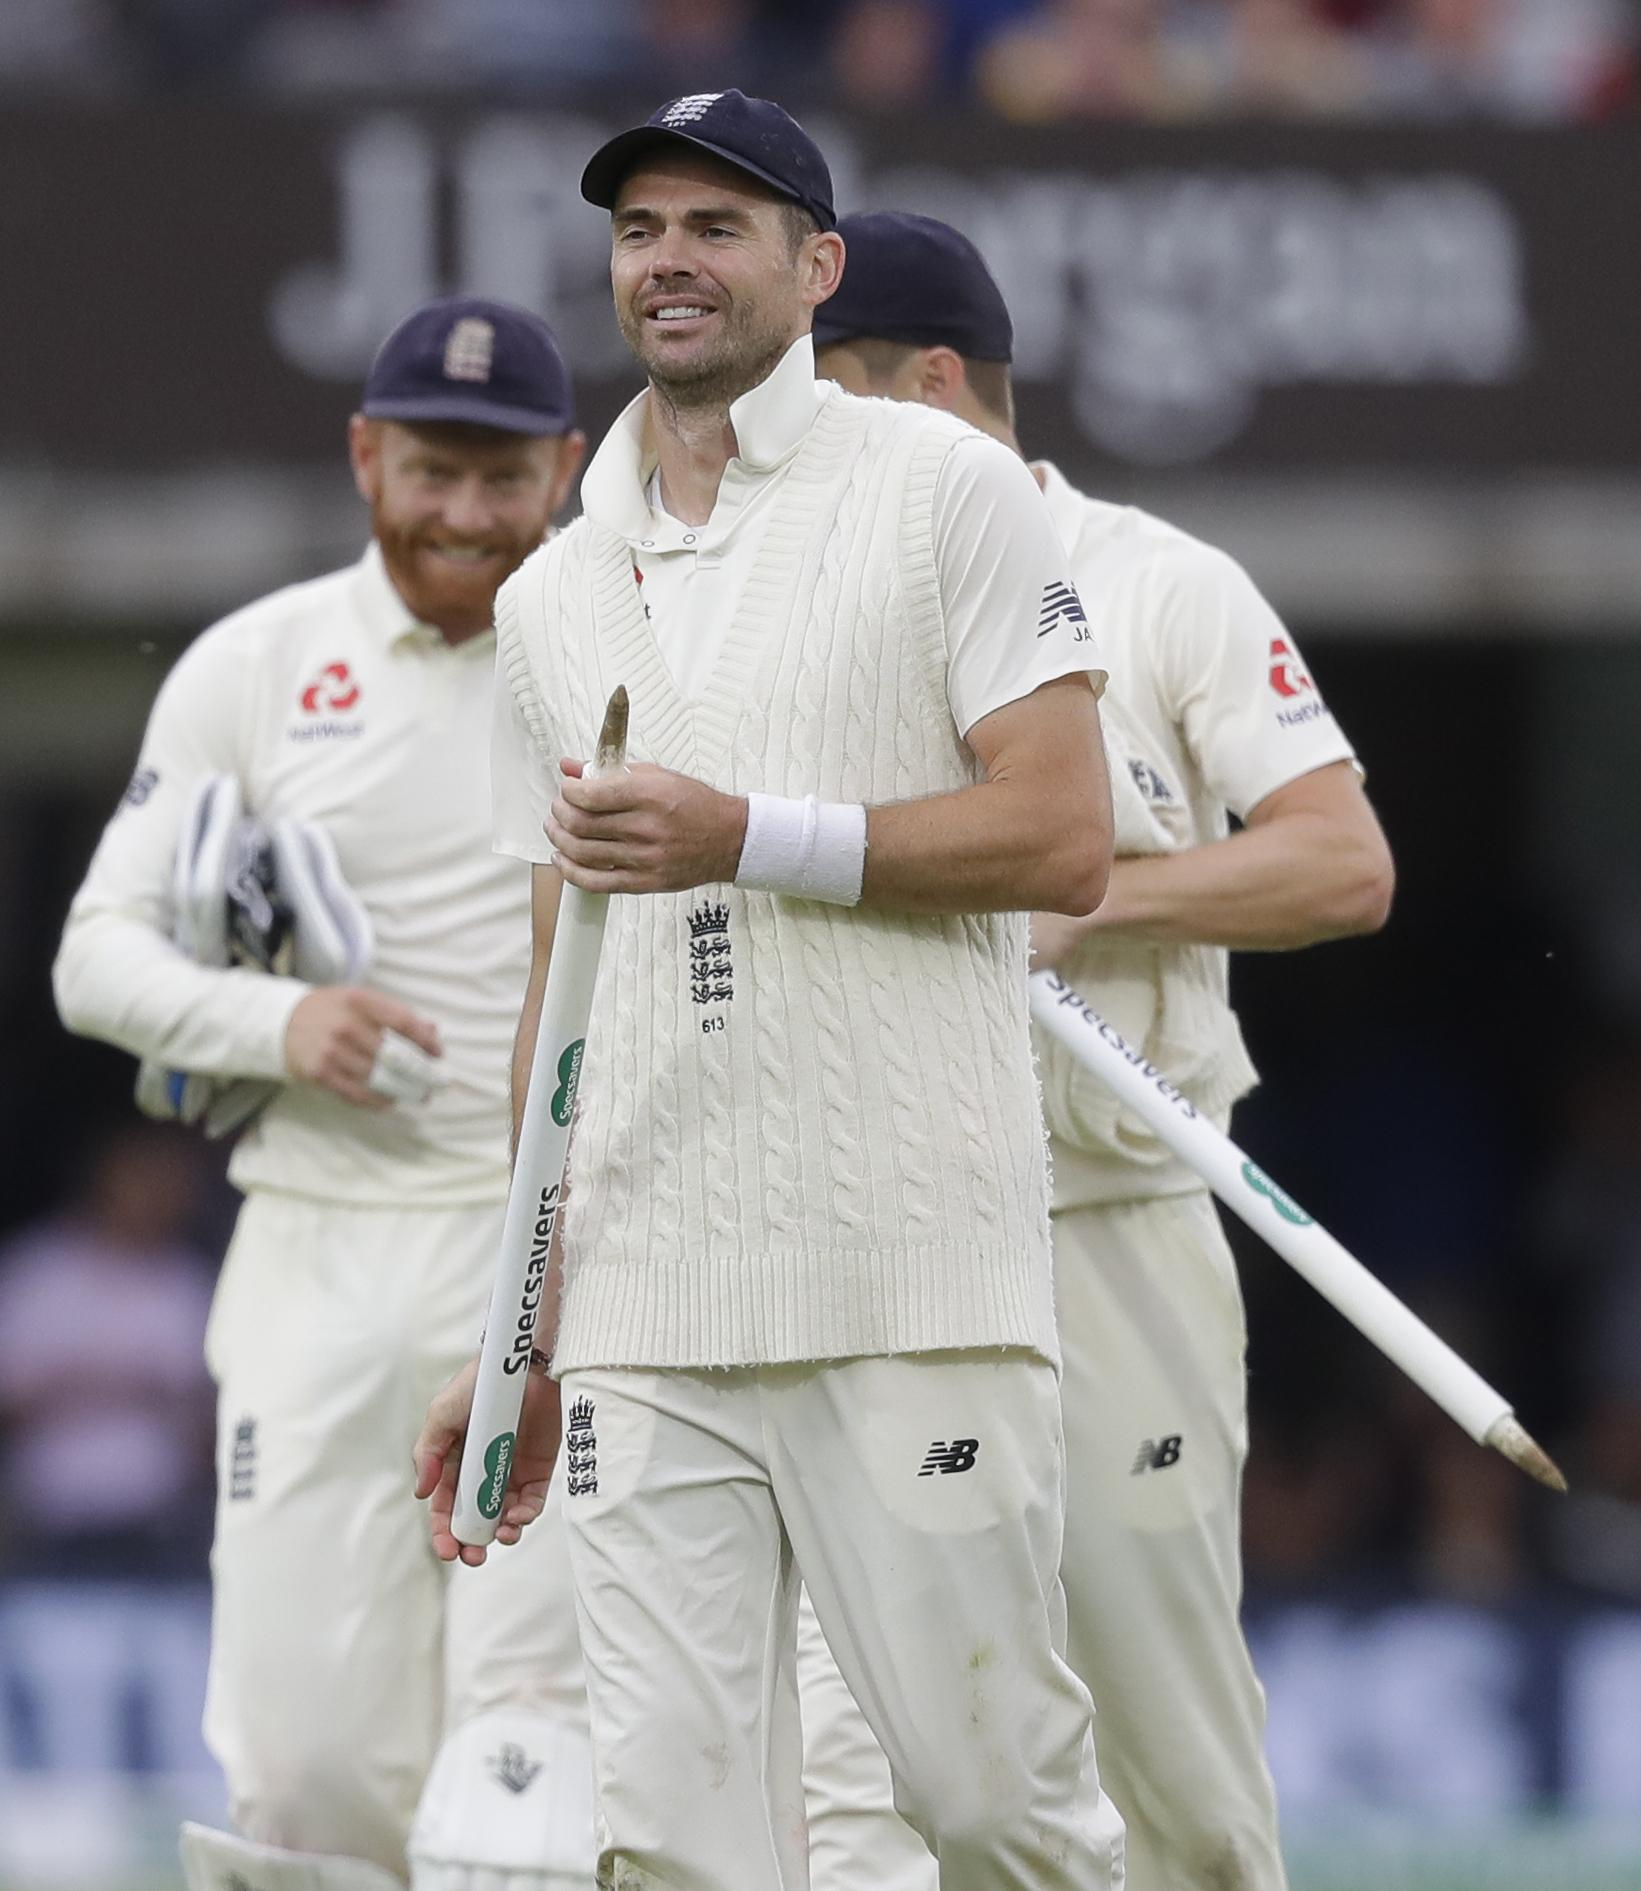 James Anderson leaves with a stump after taking four wickets as India were dismissed for just 130 to seal a huge victory for England at Lord's